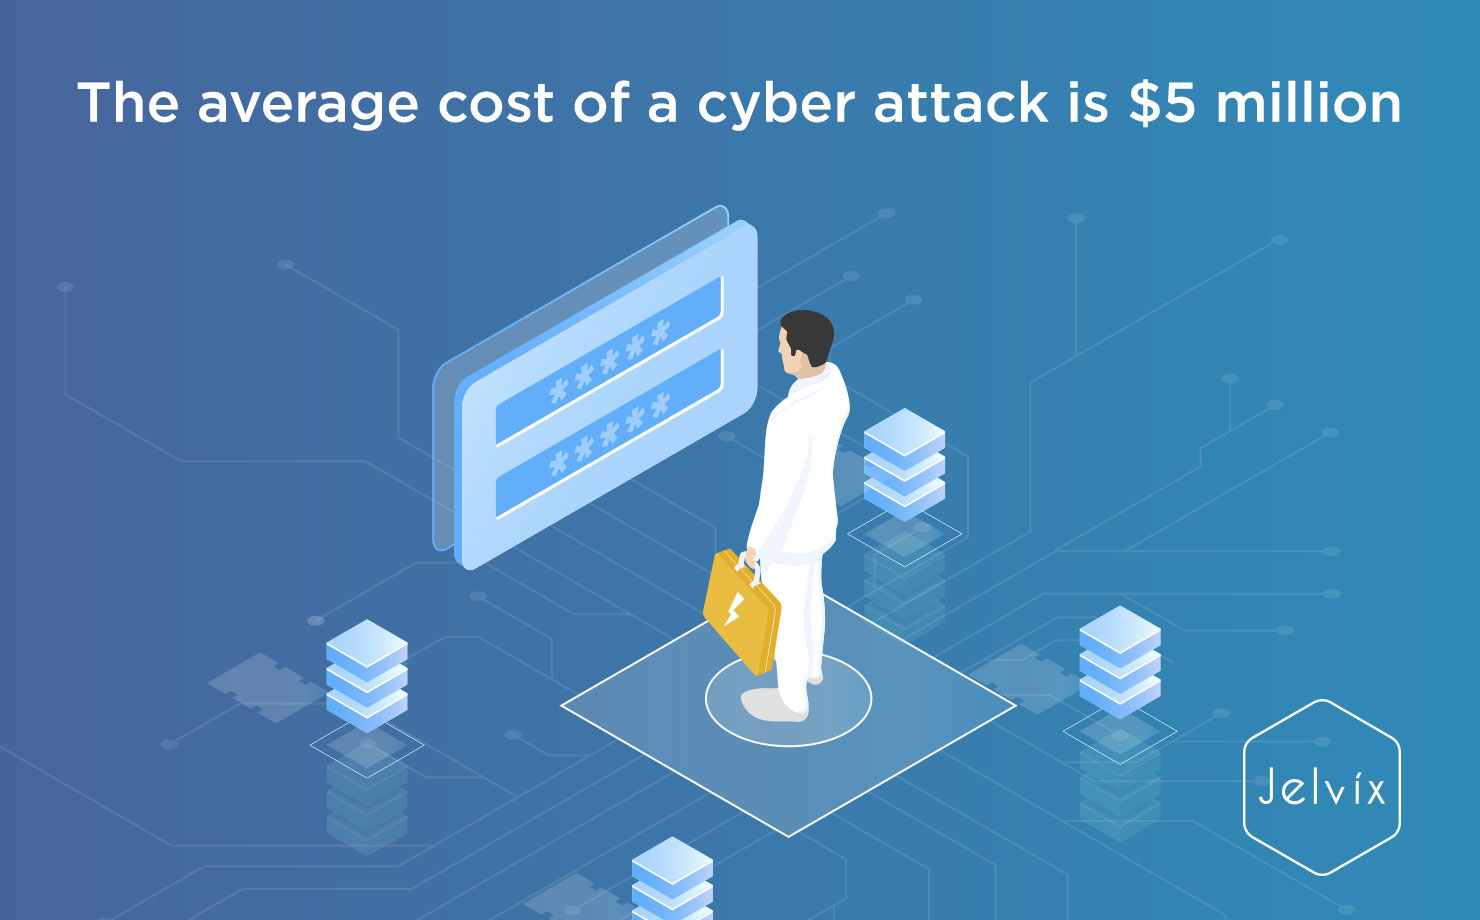 Cost of cyber attack